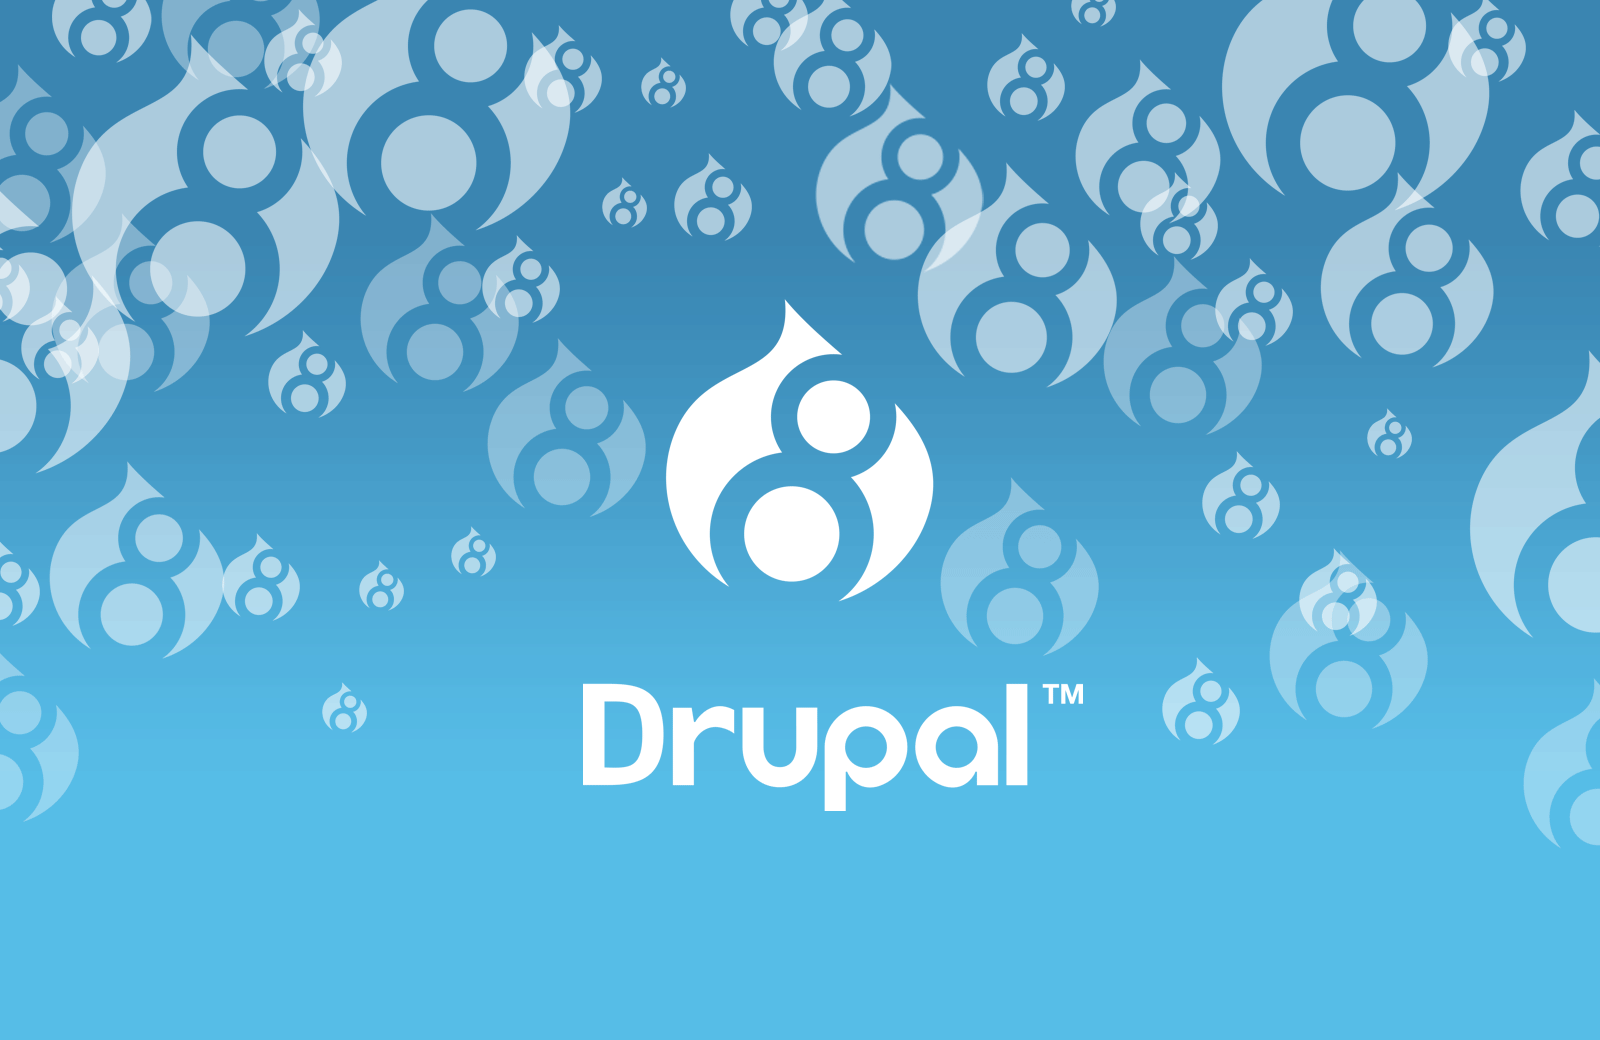 How Drupal Are You?